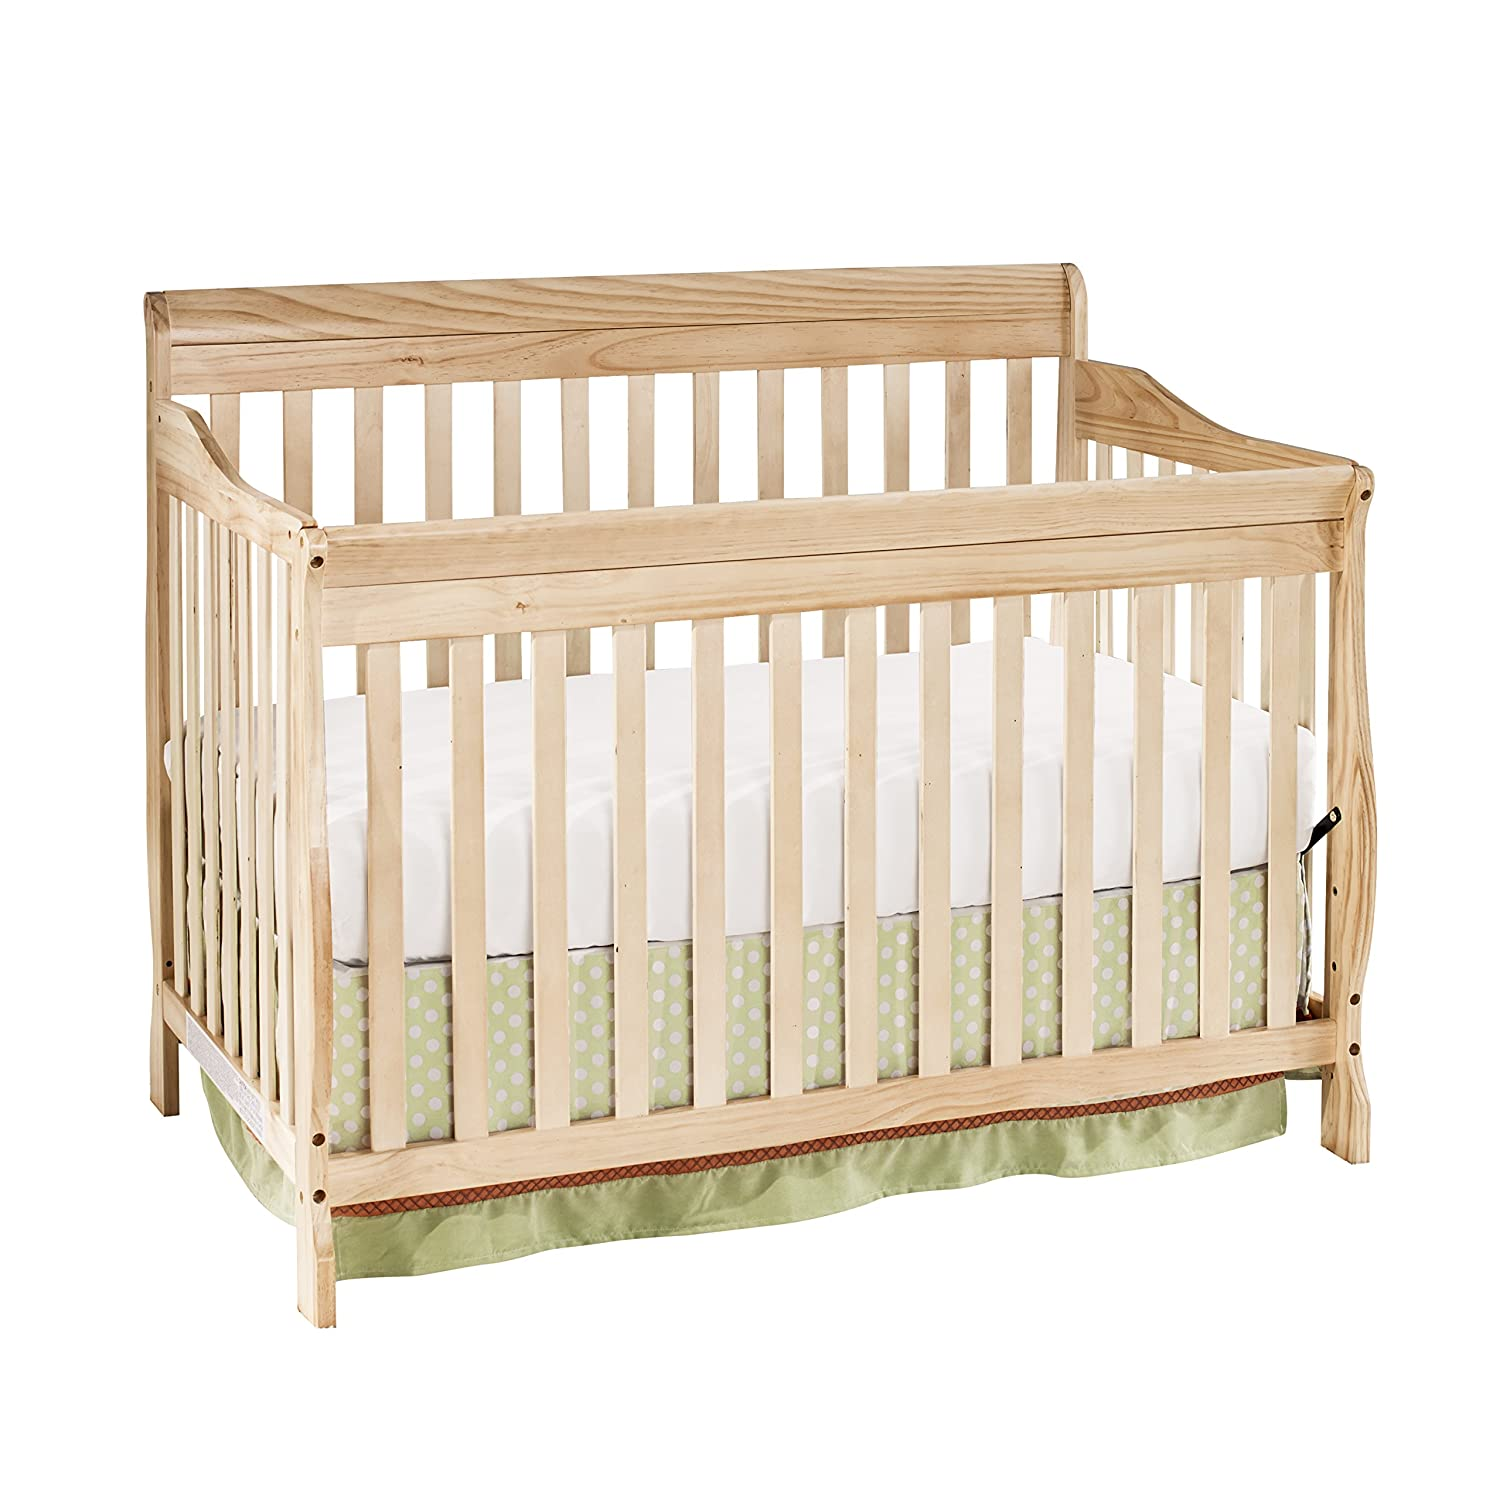 Amazon com big oshi stephanie 4 in 1 convertible crib modern unisex wood design for boys or girls adjustable height low to high convertible to